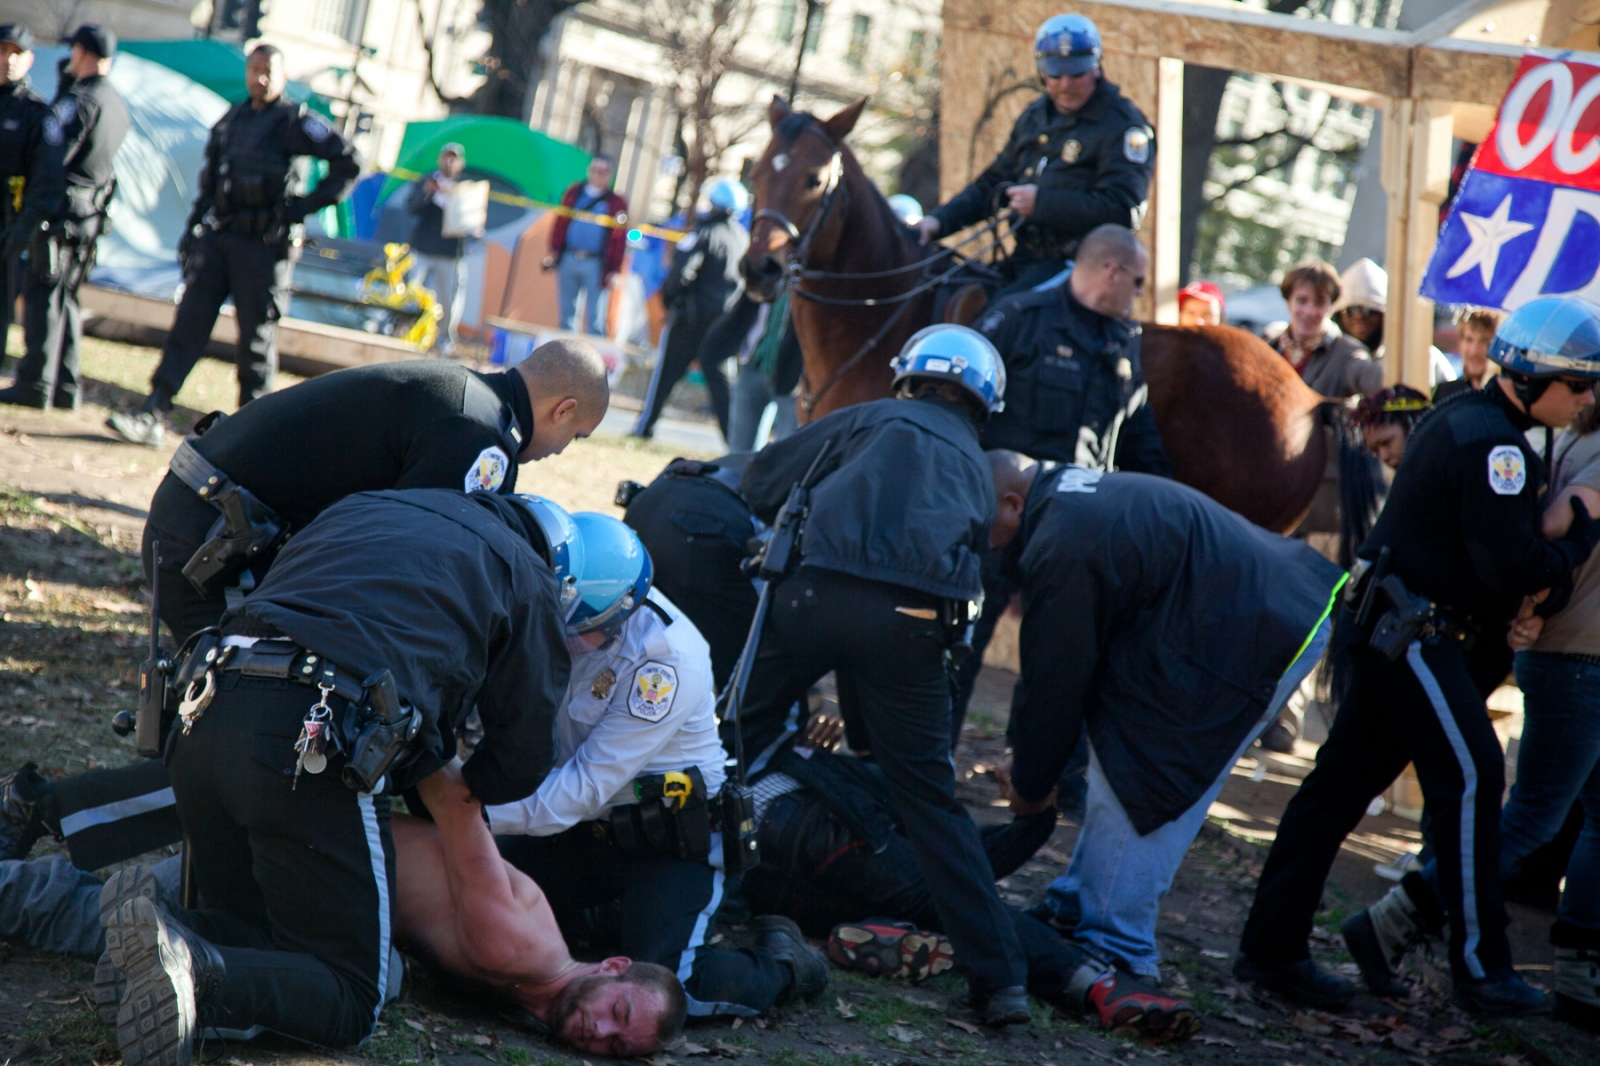 U.S. Park Police arrest protesors who broke through the police line in an effort to join fellow Occupy D.C. protestors barricaded in a wooden structure they erected in McPherson Square.